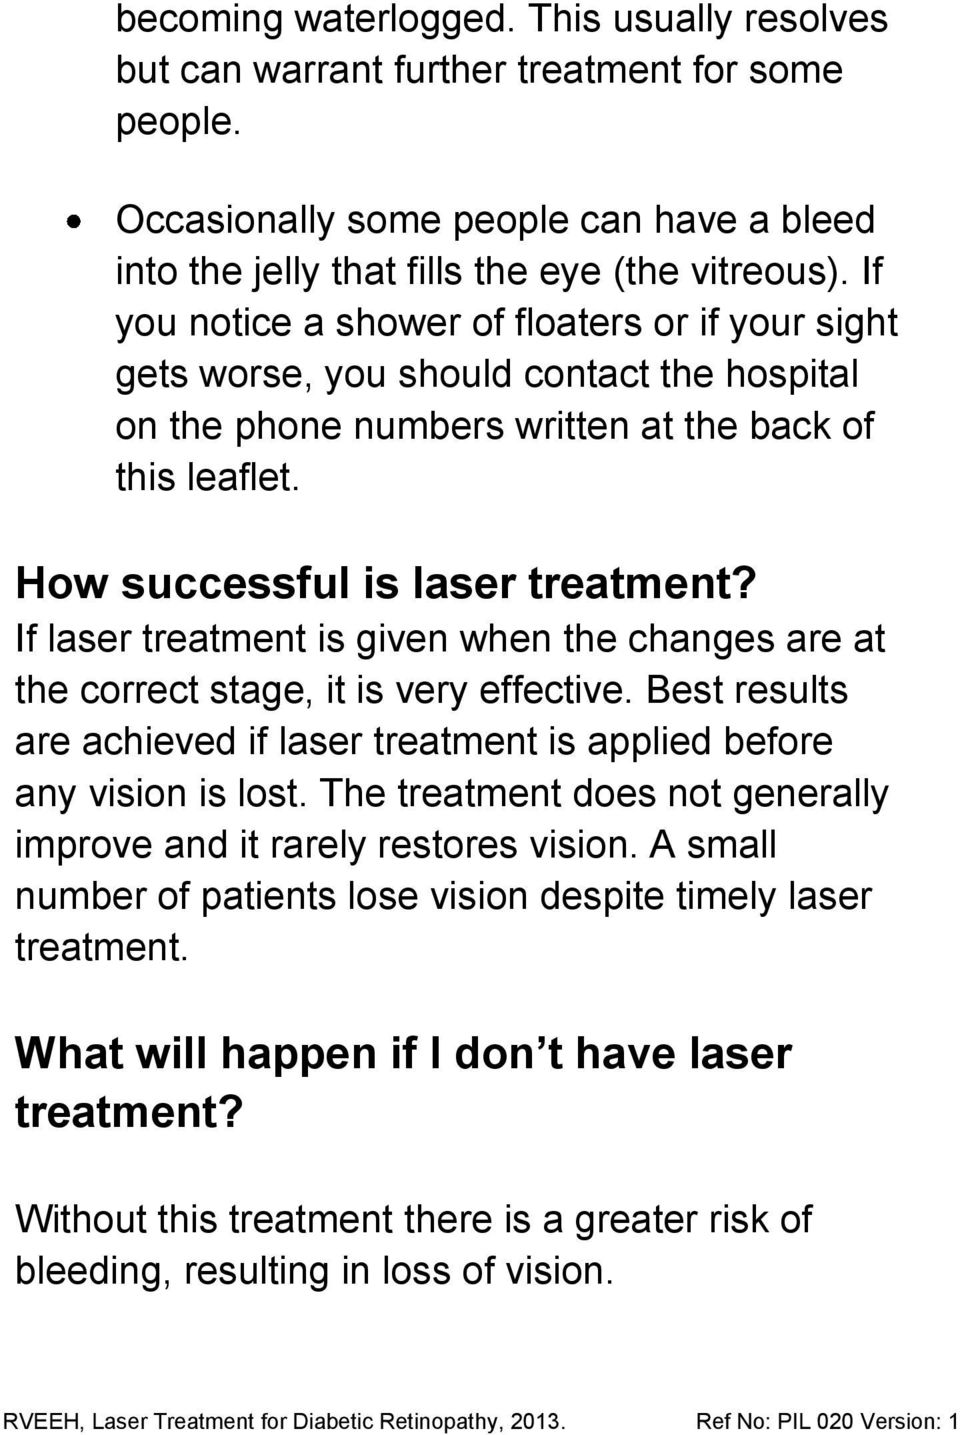 If laser treatment is given when the changes are at the correct stage, it is very effective. Best results are achieved if laser treatment is applied before any vision is lost.